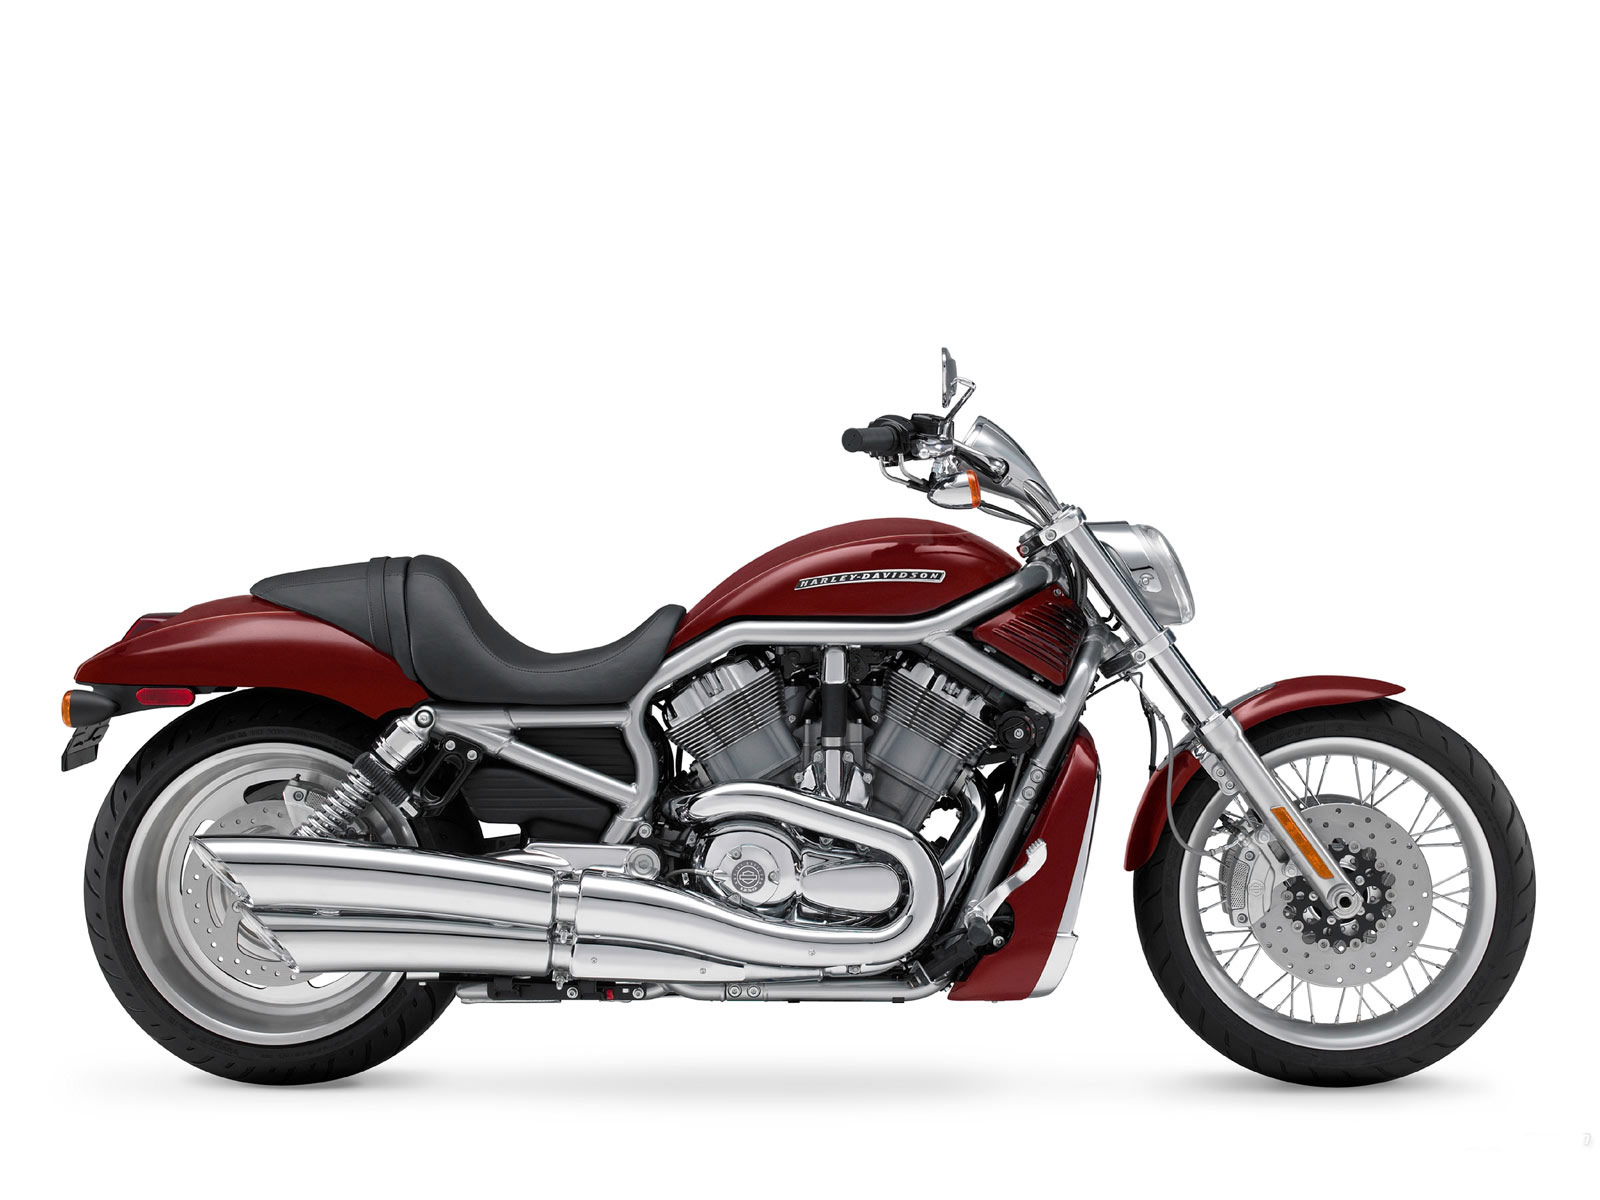 harley davidson vrscaw v rod 2009 pictures. Black Bedroom Furniture Sets. Home Design Ideas